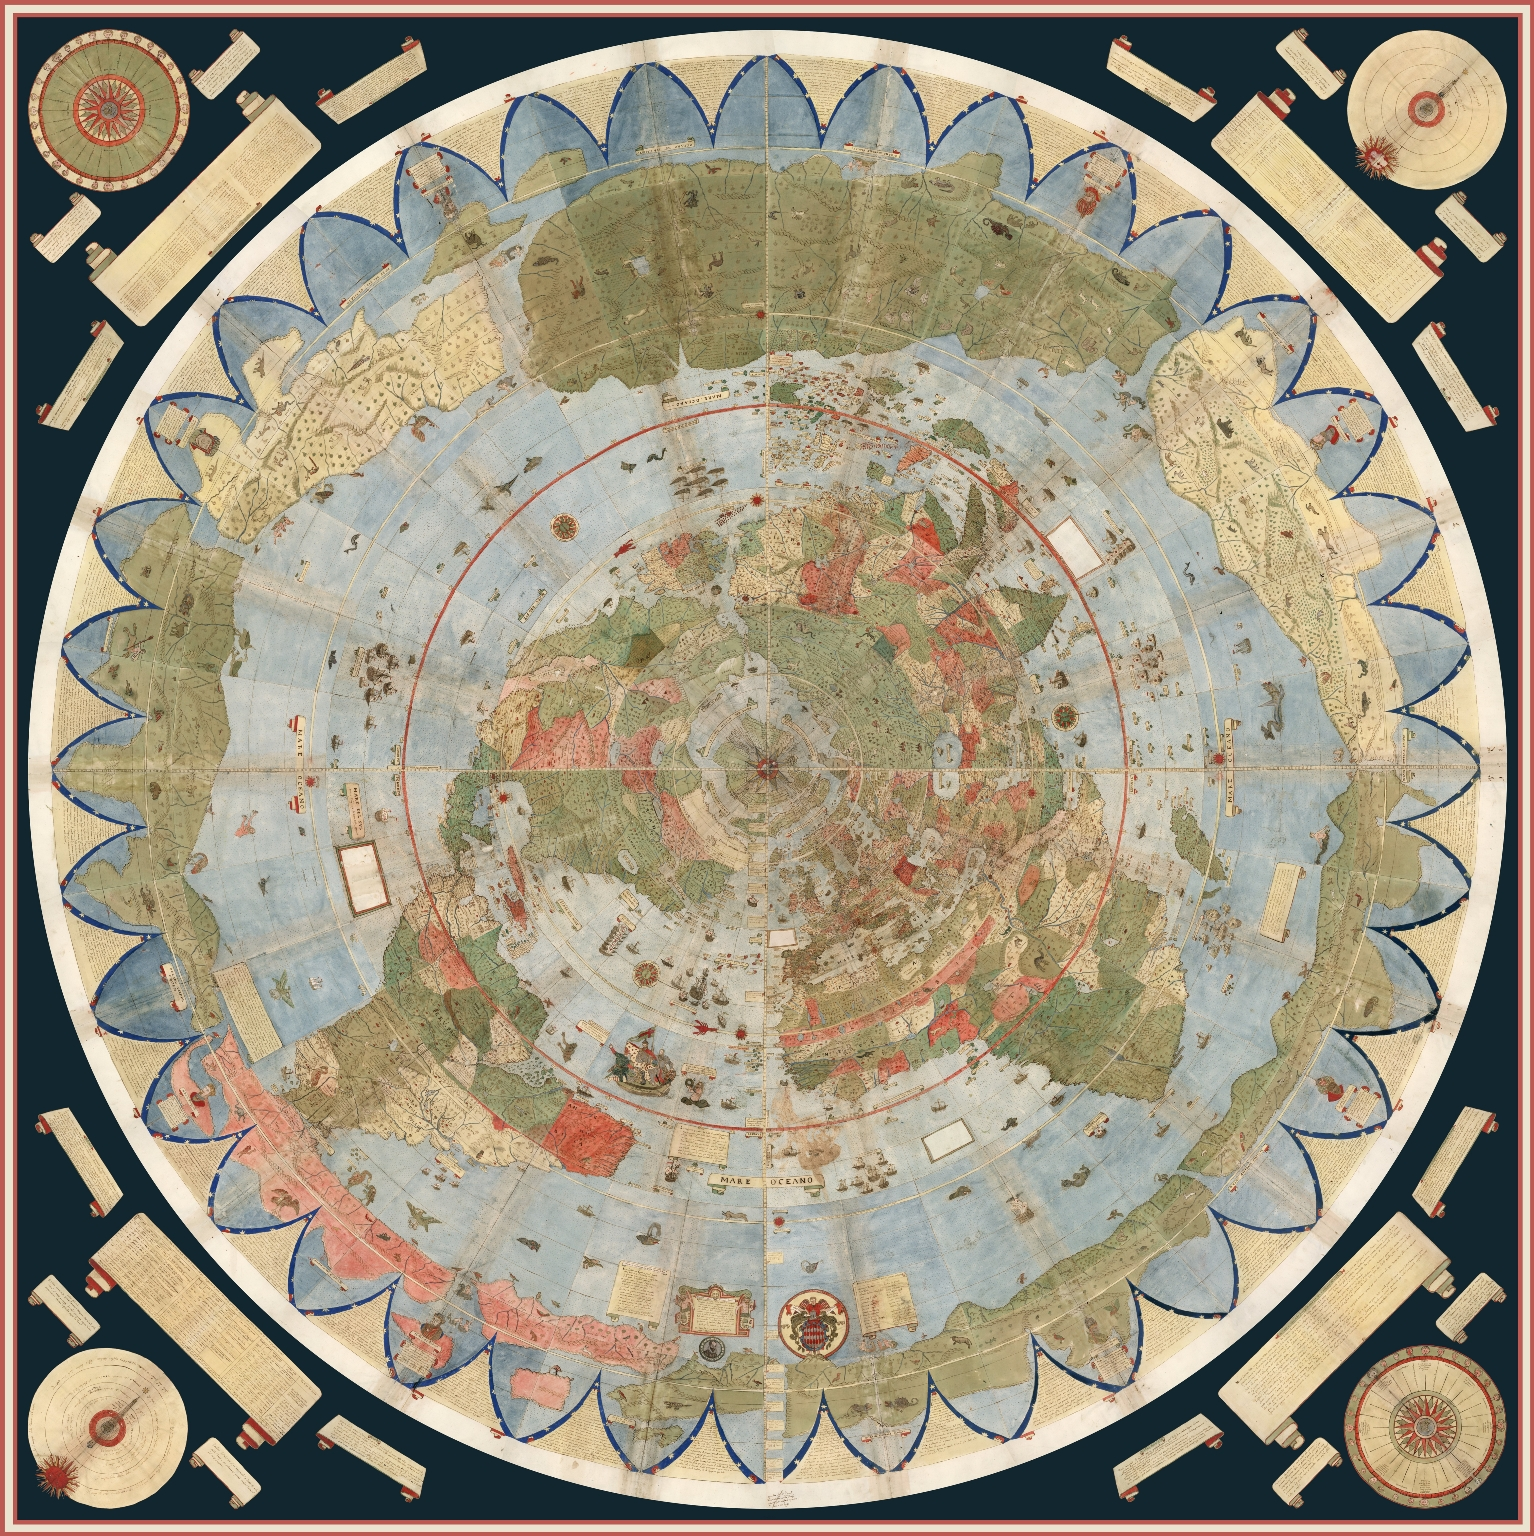 image regarding Planisphere Printable named David Rumsey Ancient Map Range Major Early Planet